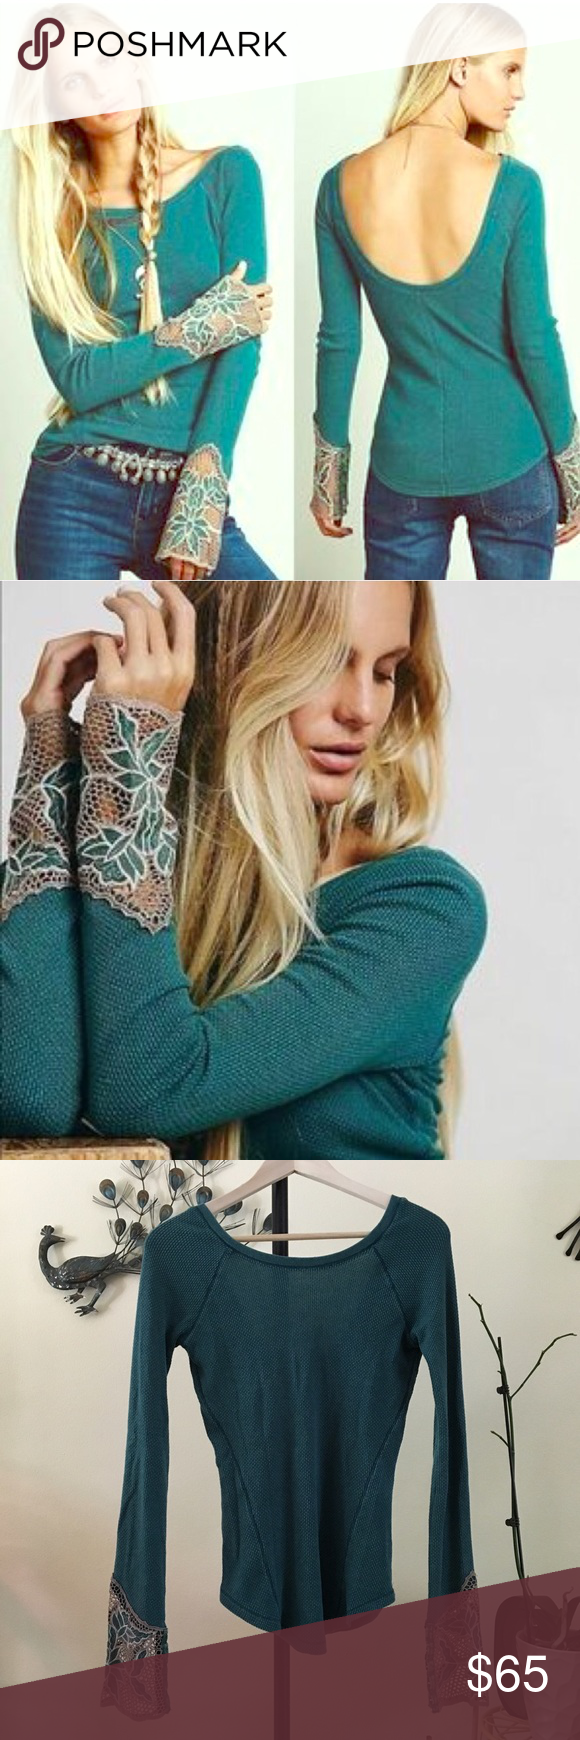 Bali babe Free People thermal Get your cozy on with this sexy teal colored thermal by Free People! With a rounded neckline, low scoop back, intricate lace detailed cuffs, and curved hem, this style thermal is so romantic and feminine! EUC. Free People Tops